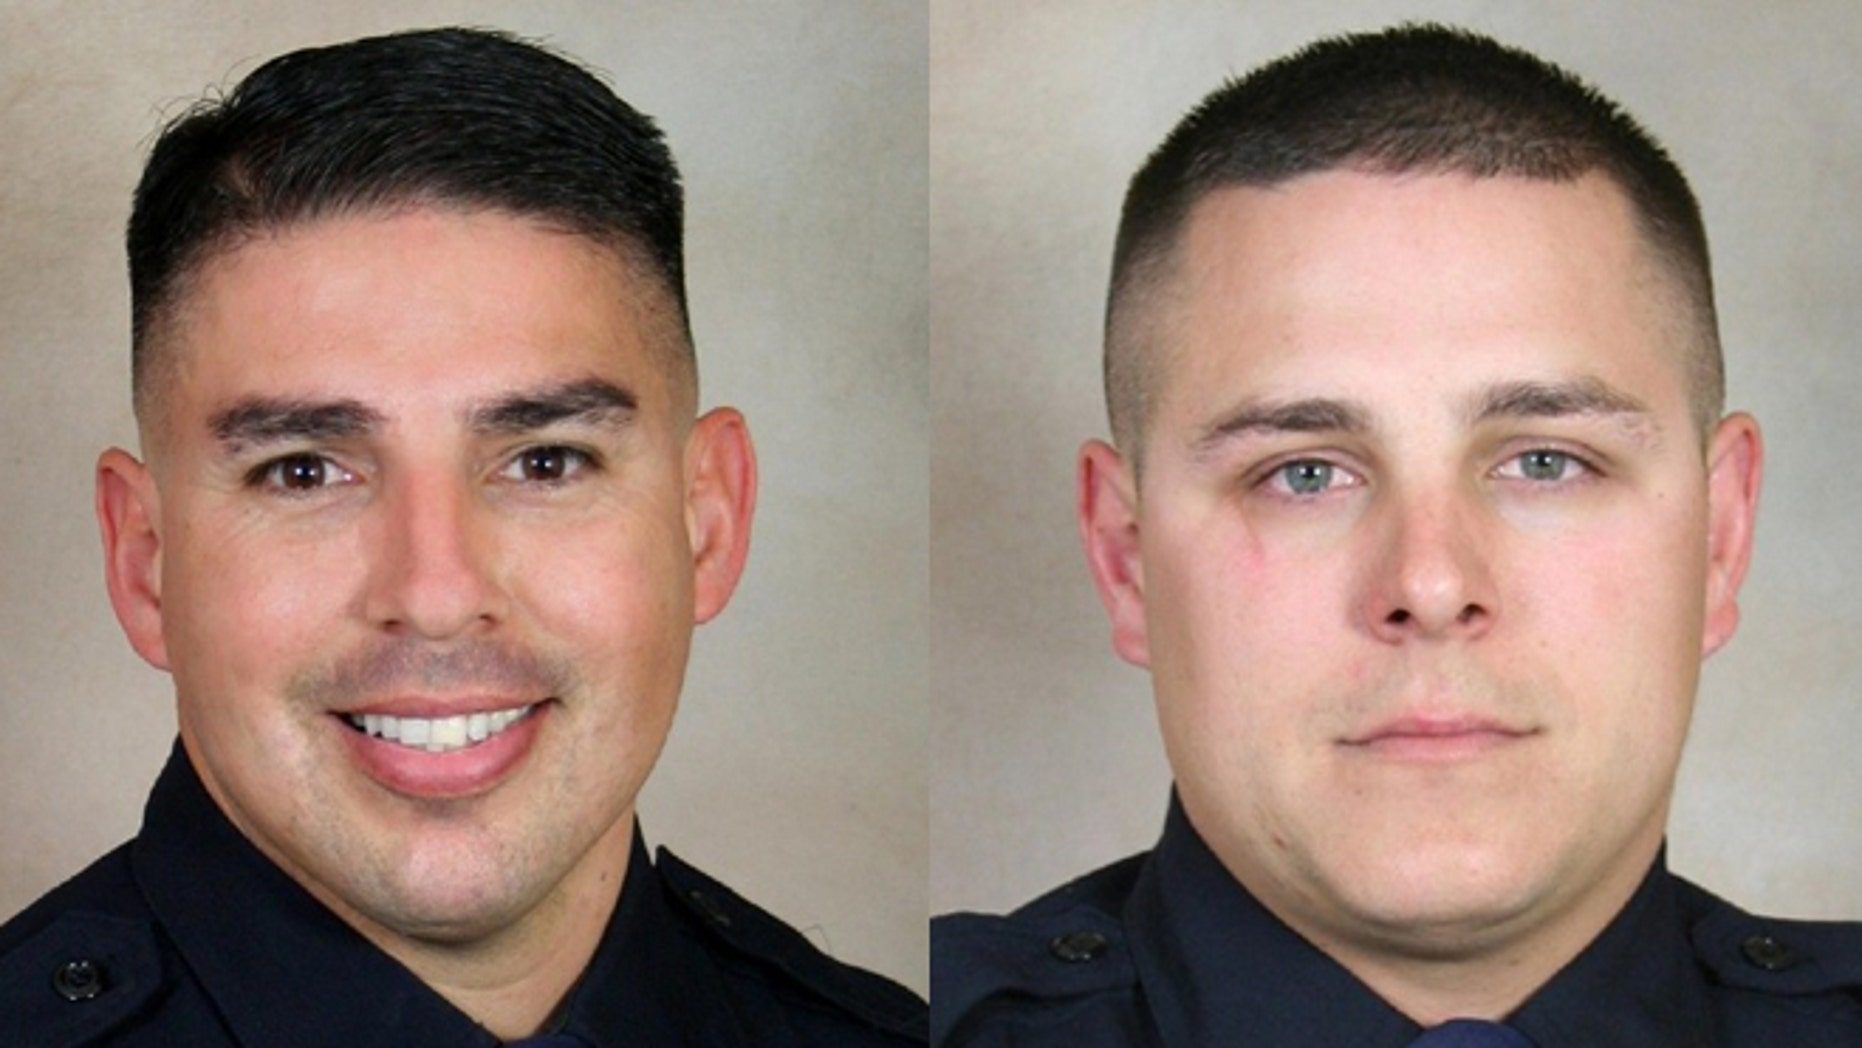 Officers Damacio Diaz (left) and Patrick Mara. (Photos: Bakersfield Police Department)